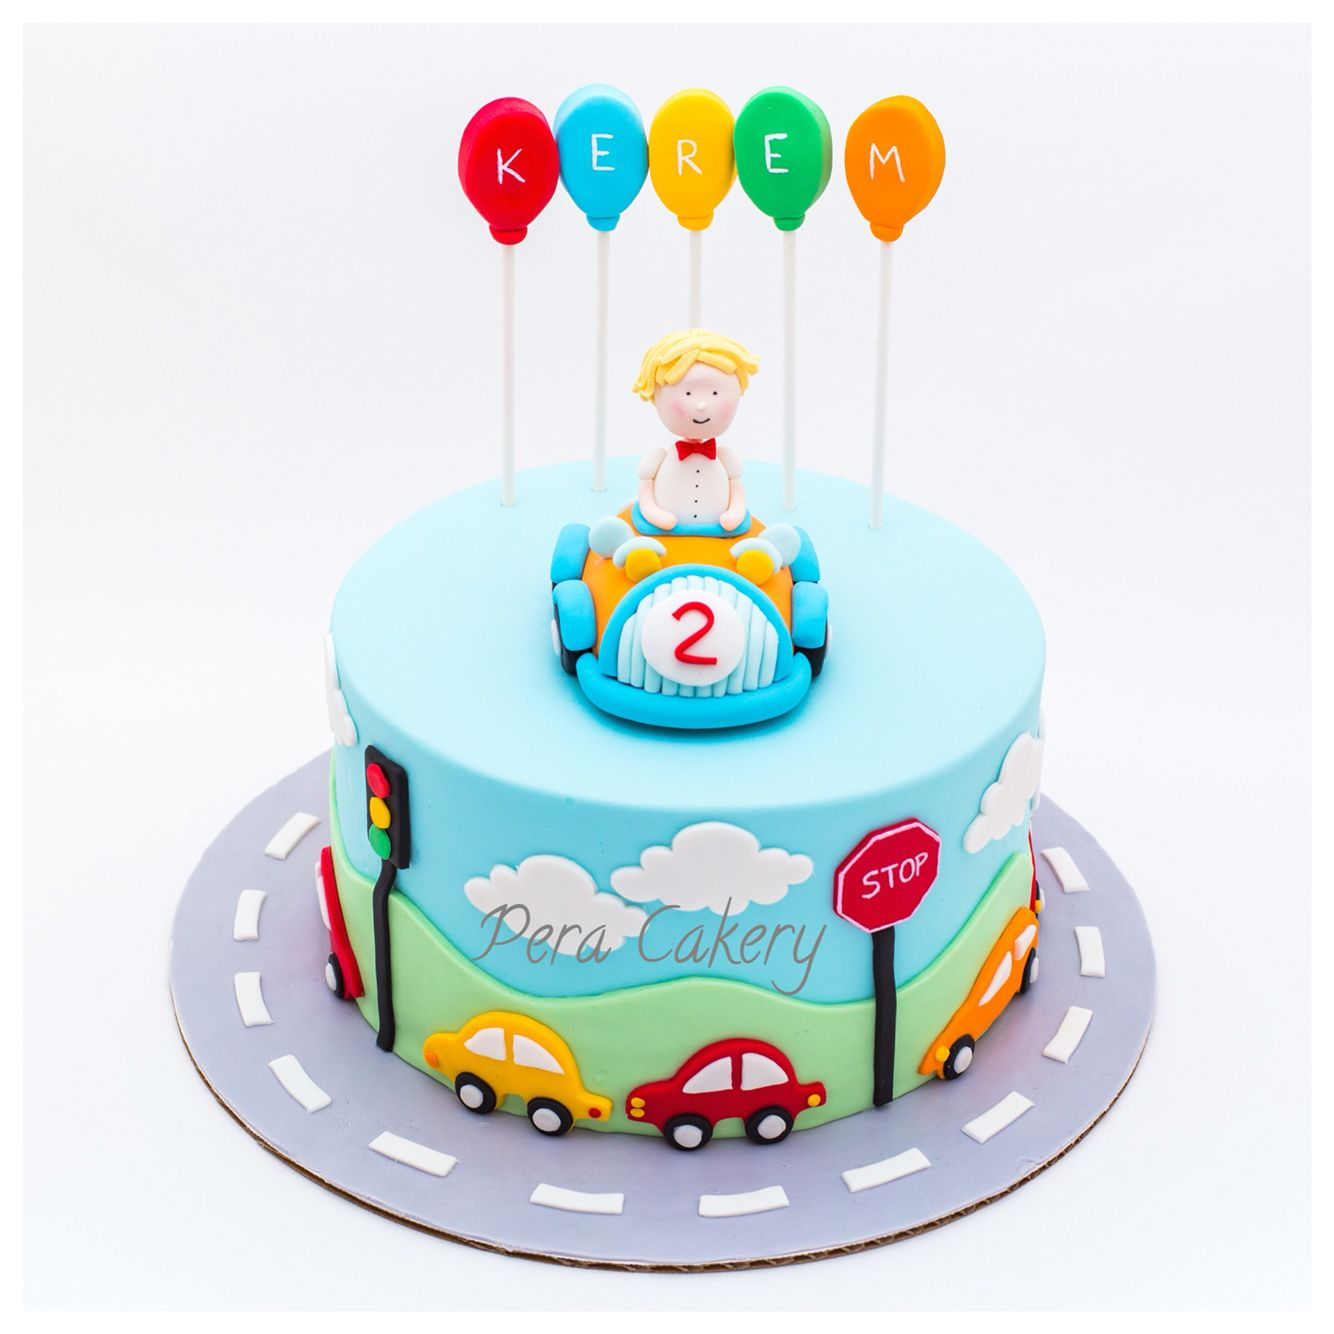 Birthday Cake For 2 Year Old Baby Girl Pictures : Car cake for a 2 year old boy Pera Cakery Cakes ...